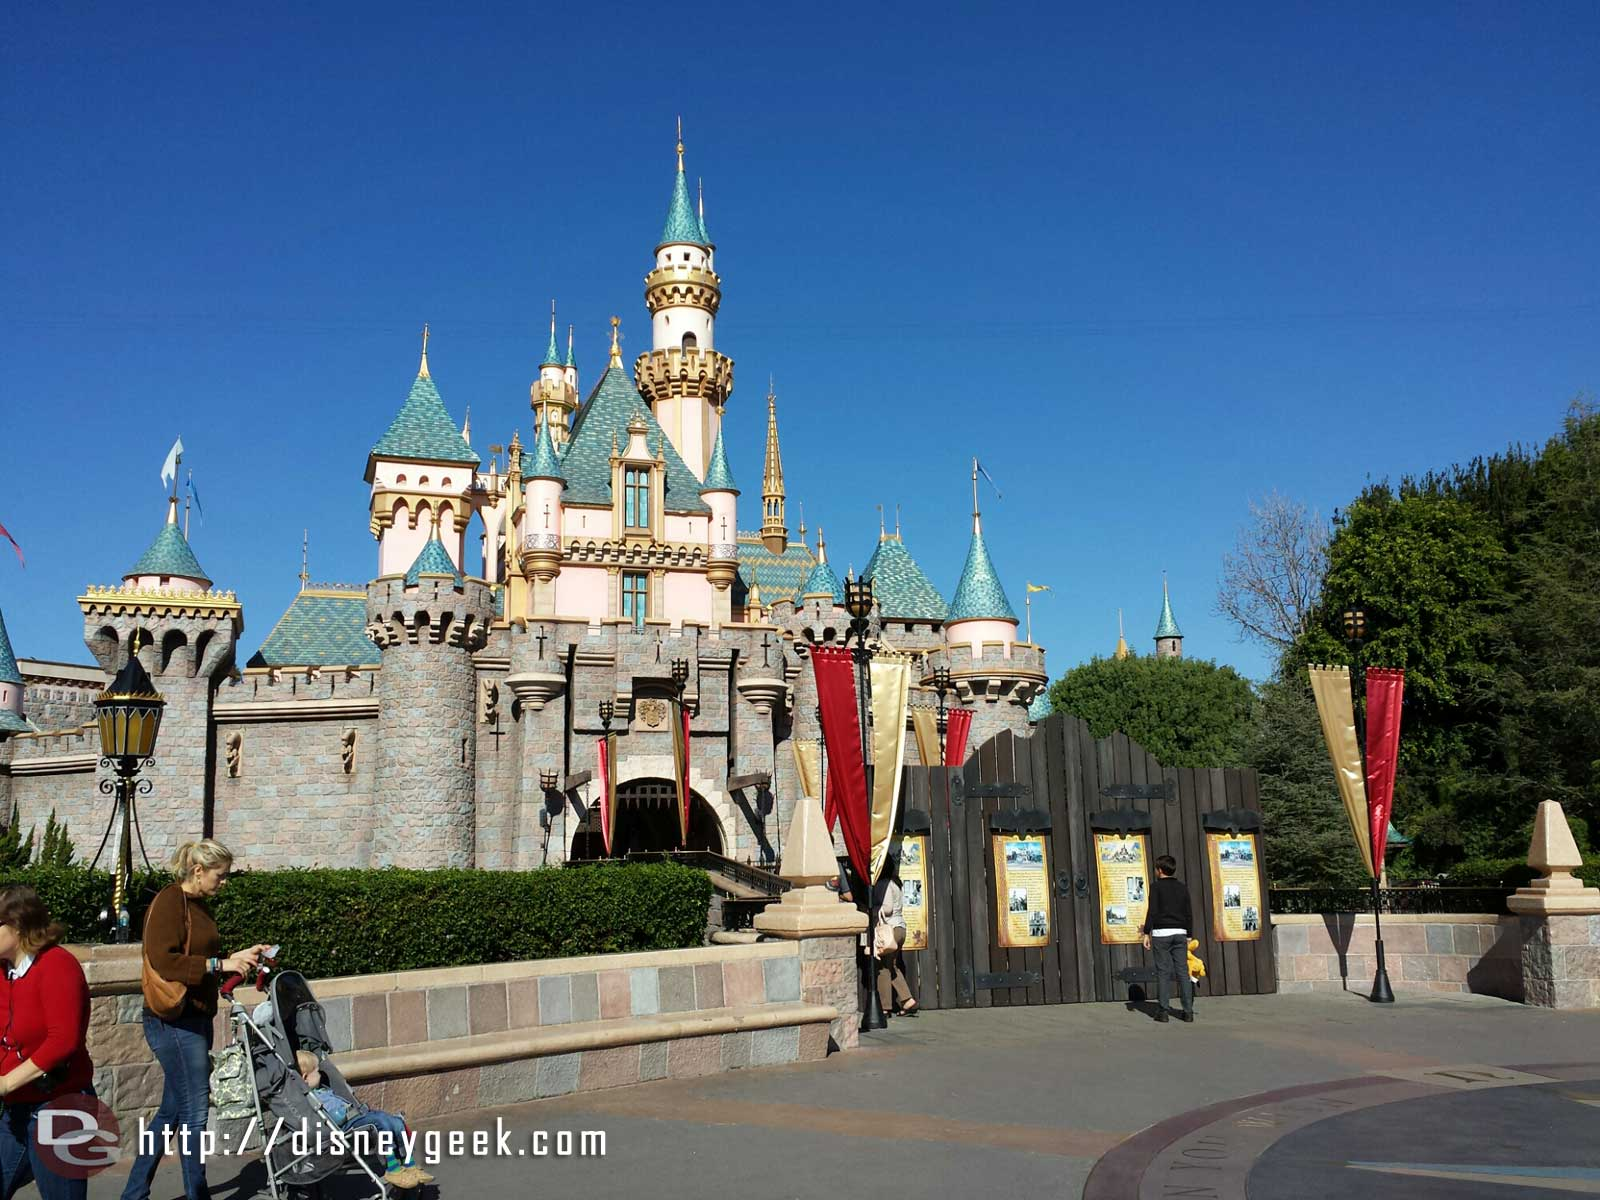 Sleeping Beauty Castle is closed and a wall is up blocking the walkway #Disneyland